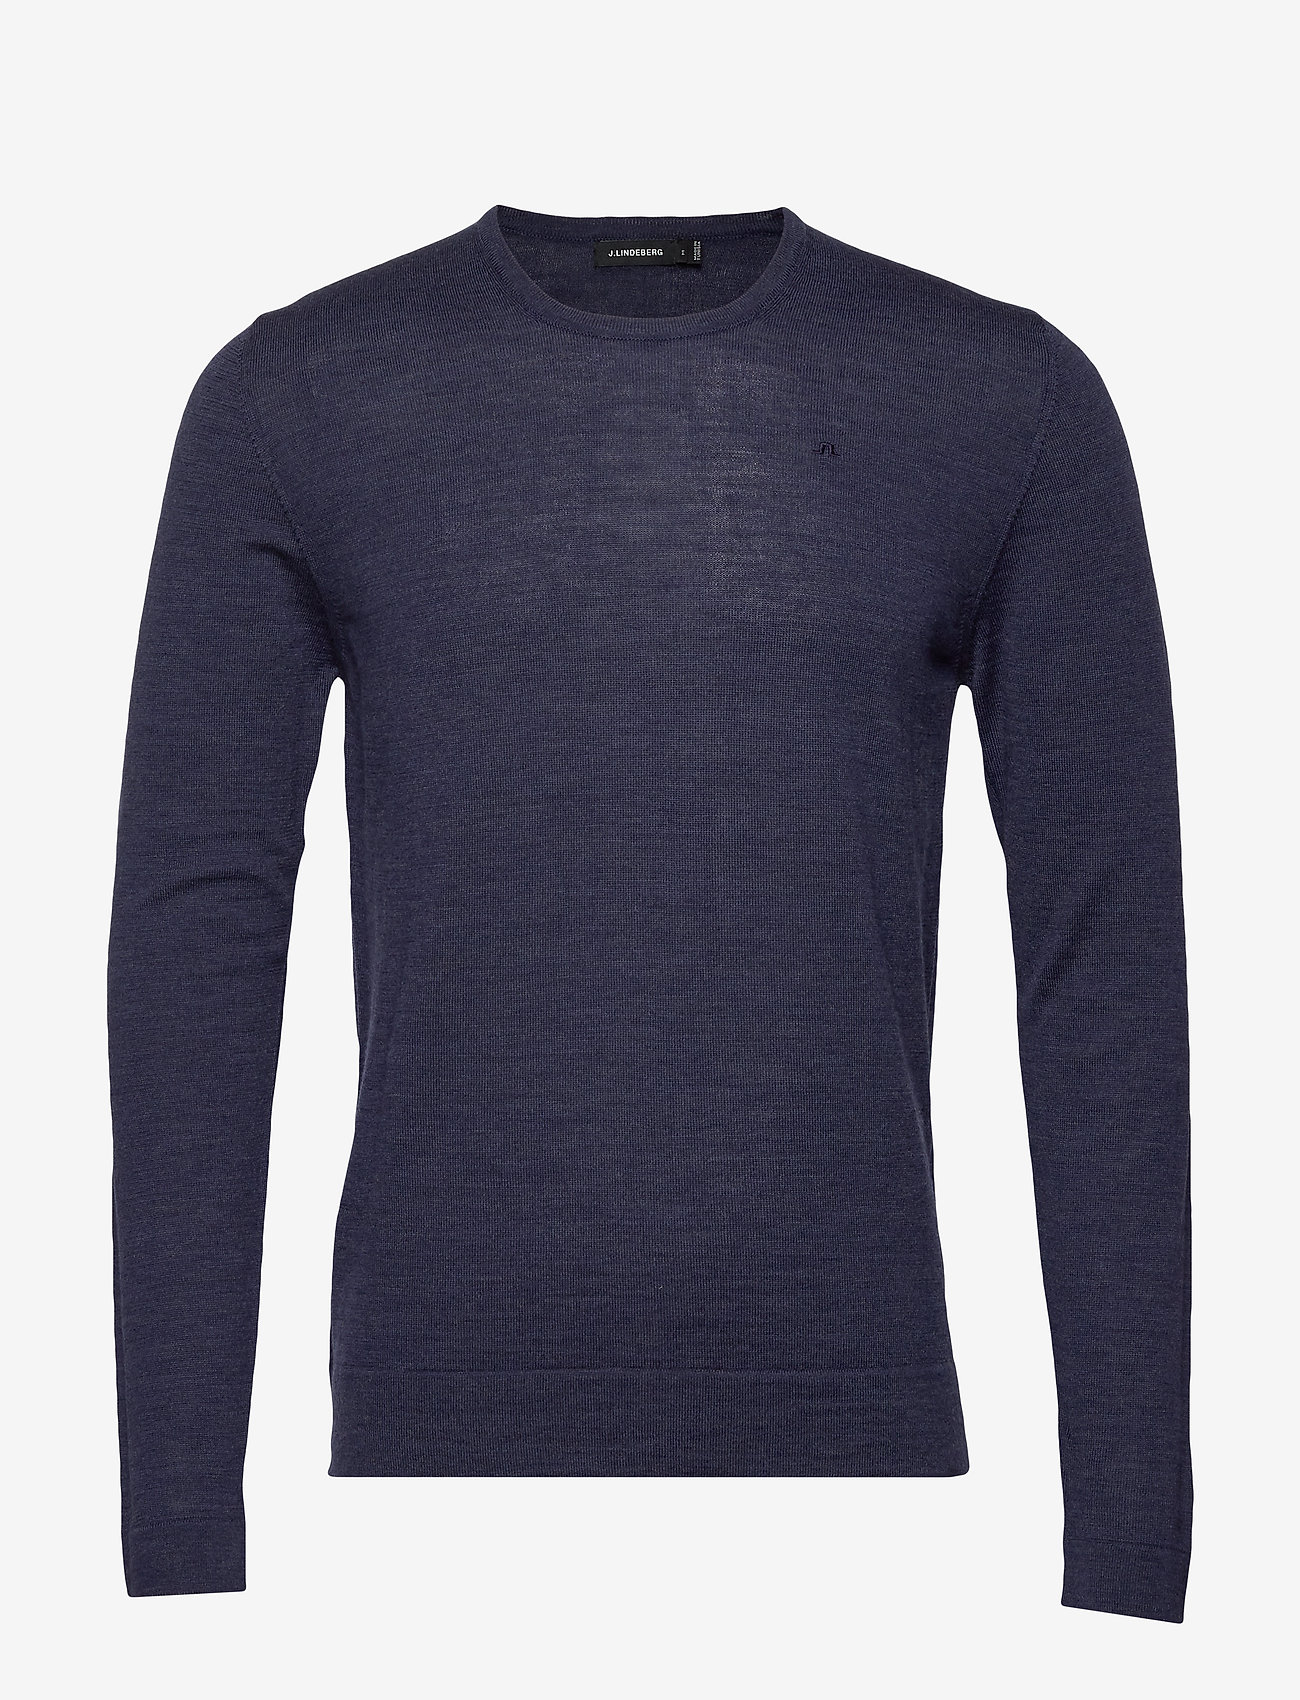 J. Lindeberg - Newman-Perfect Merino - basic strik - jl navy - 0